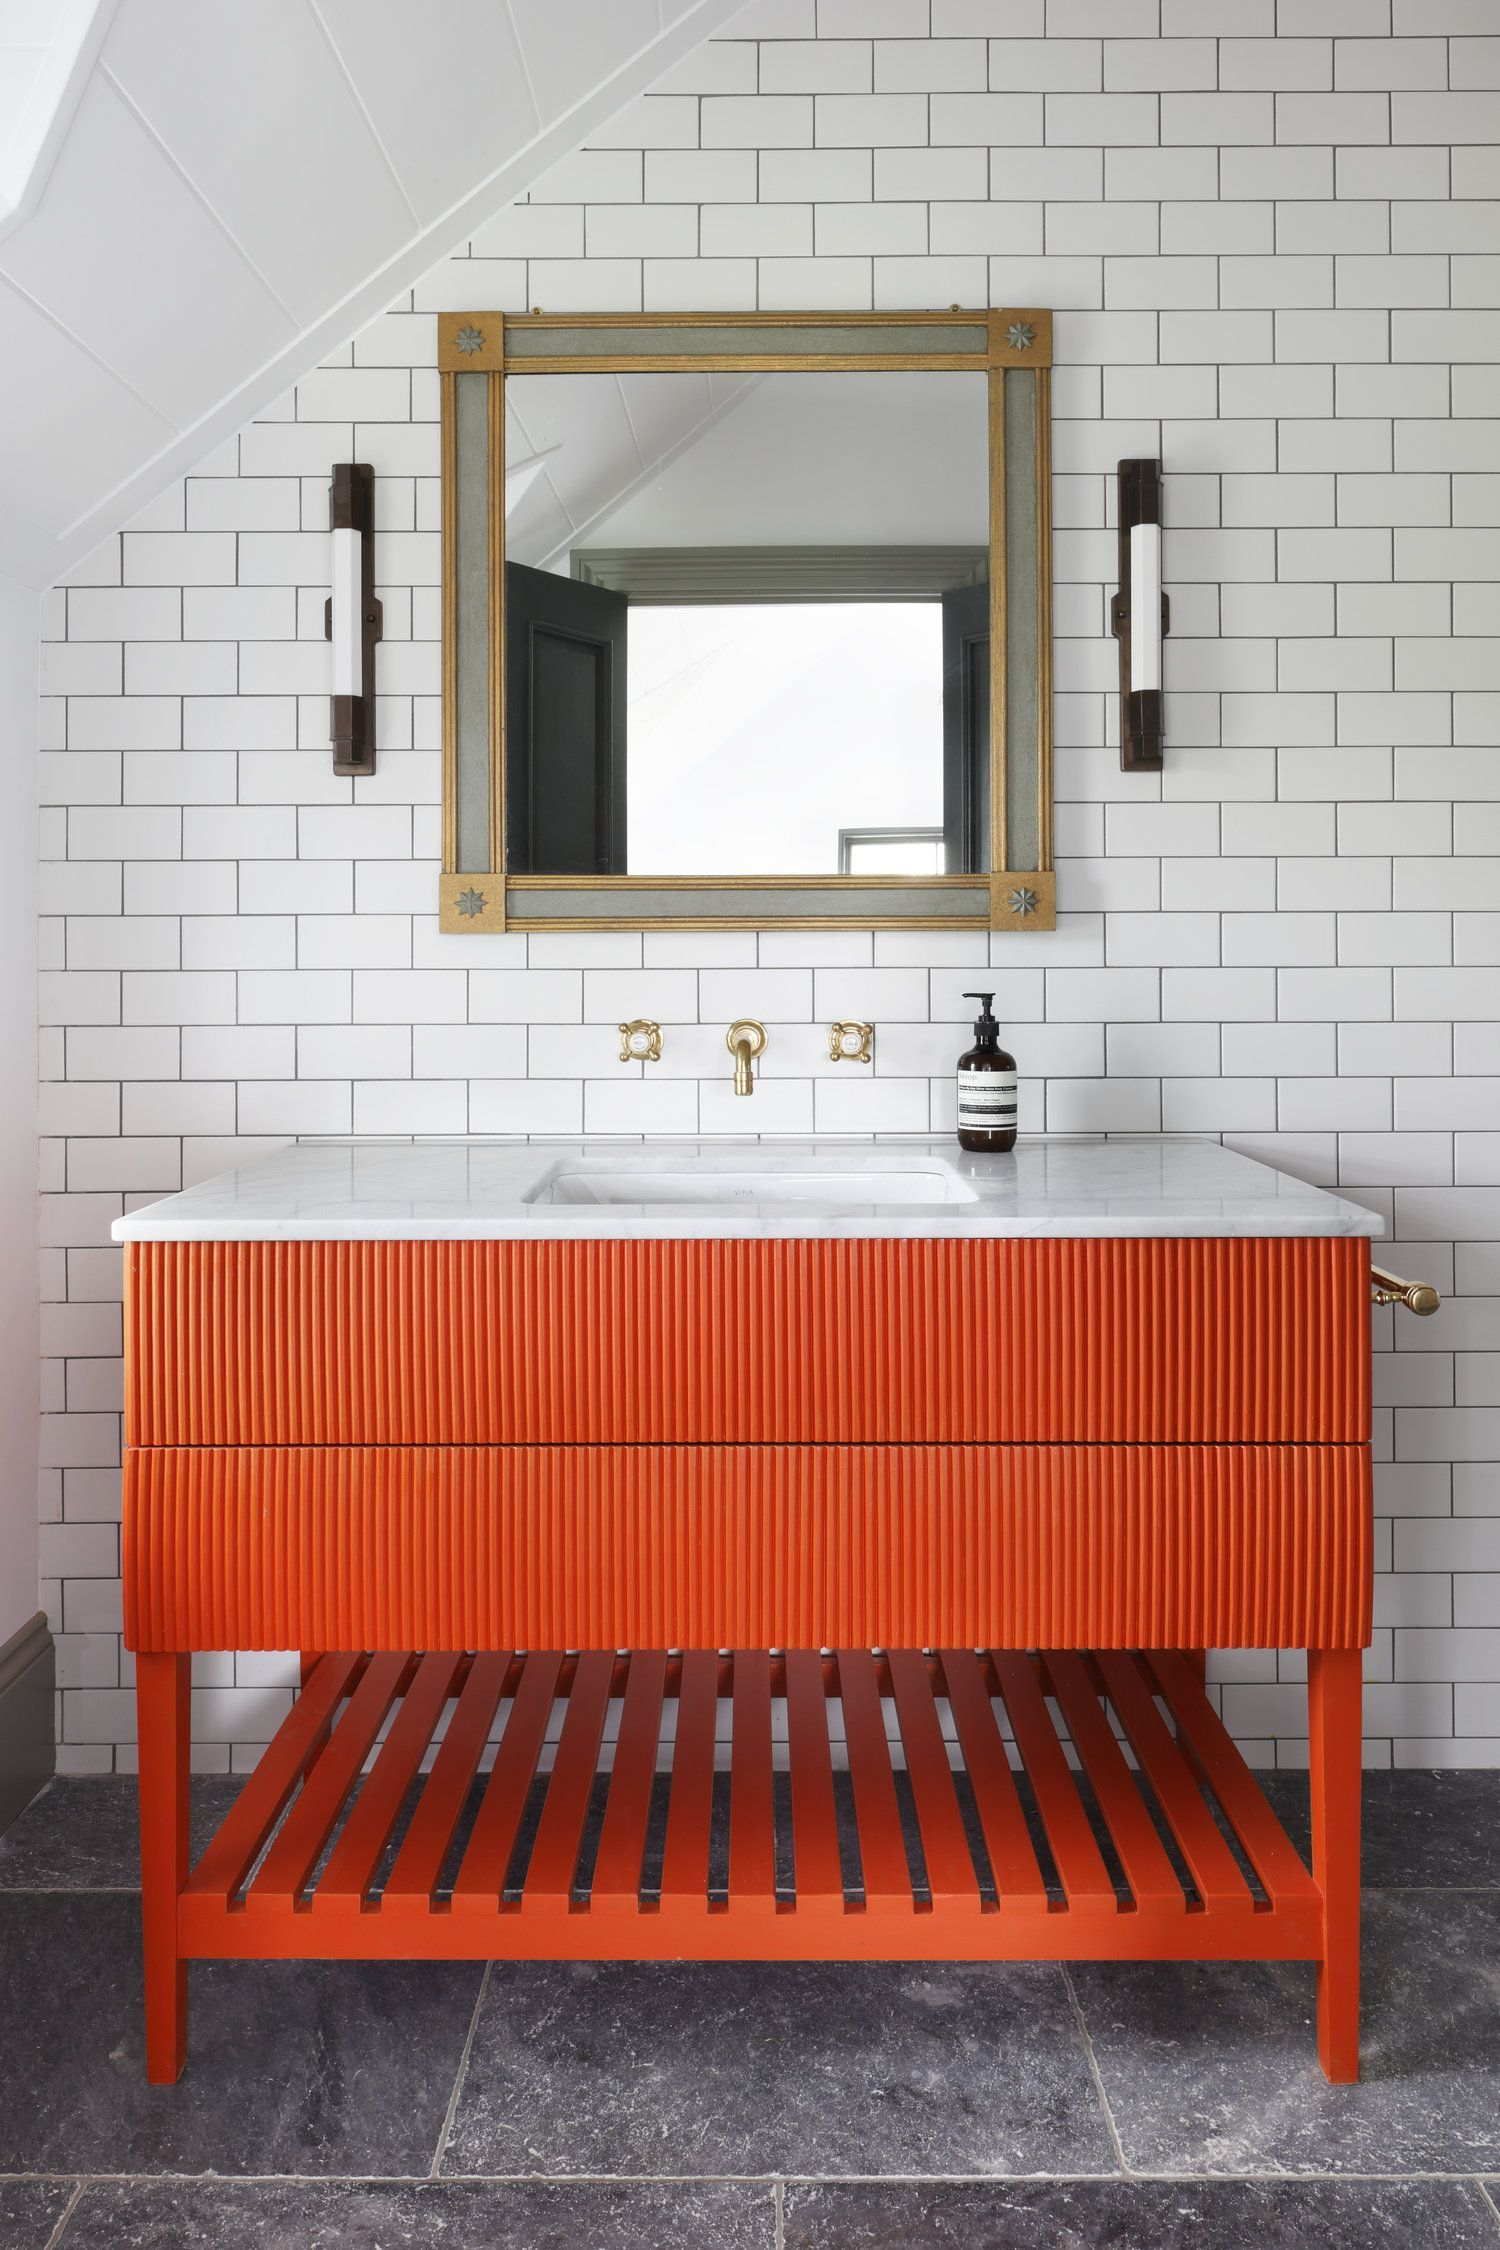 The Ham Blog Follow Our Blog To Keep Up To Date With Whats Going On At Ham From Projects To Ne Bathroom Design Bathroom Interior Design Coral Bathroom Decor